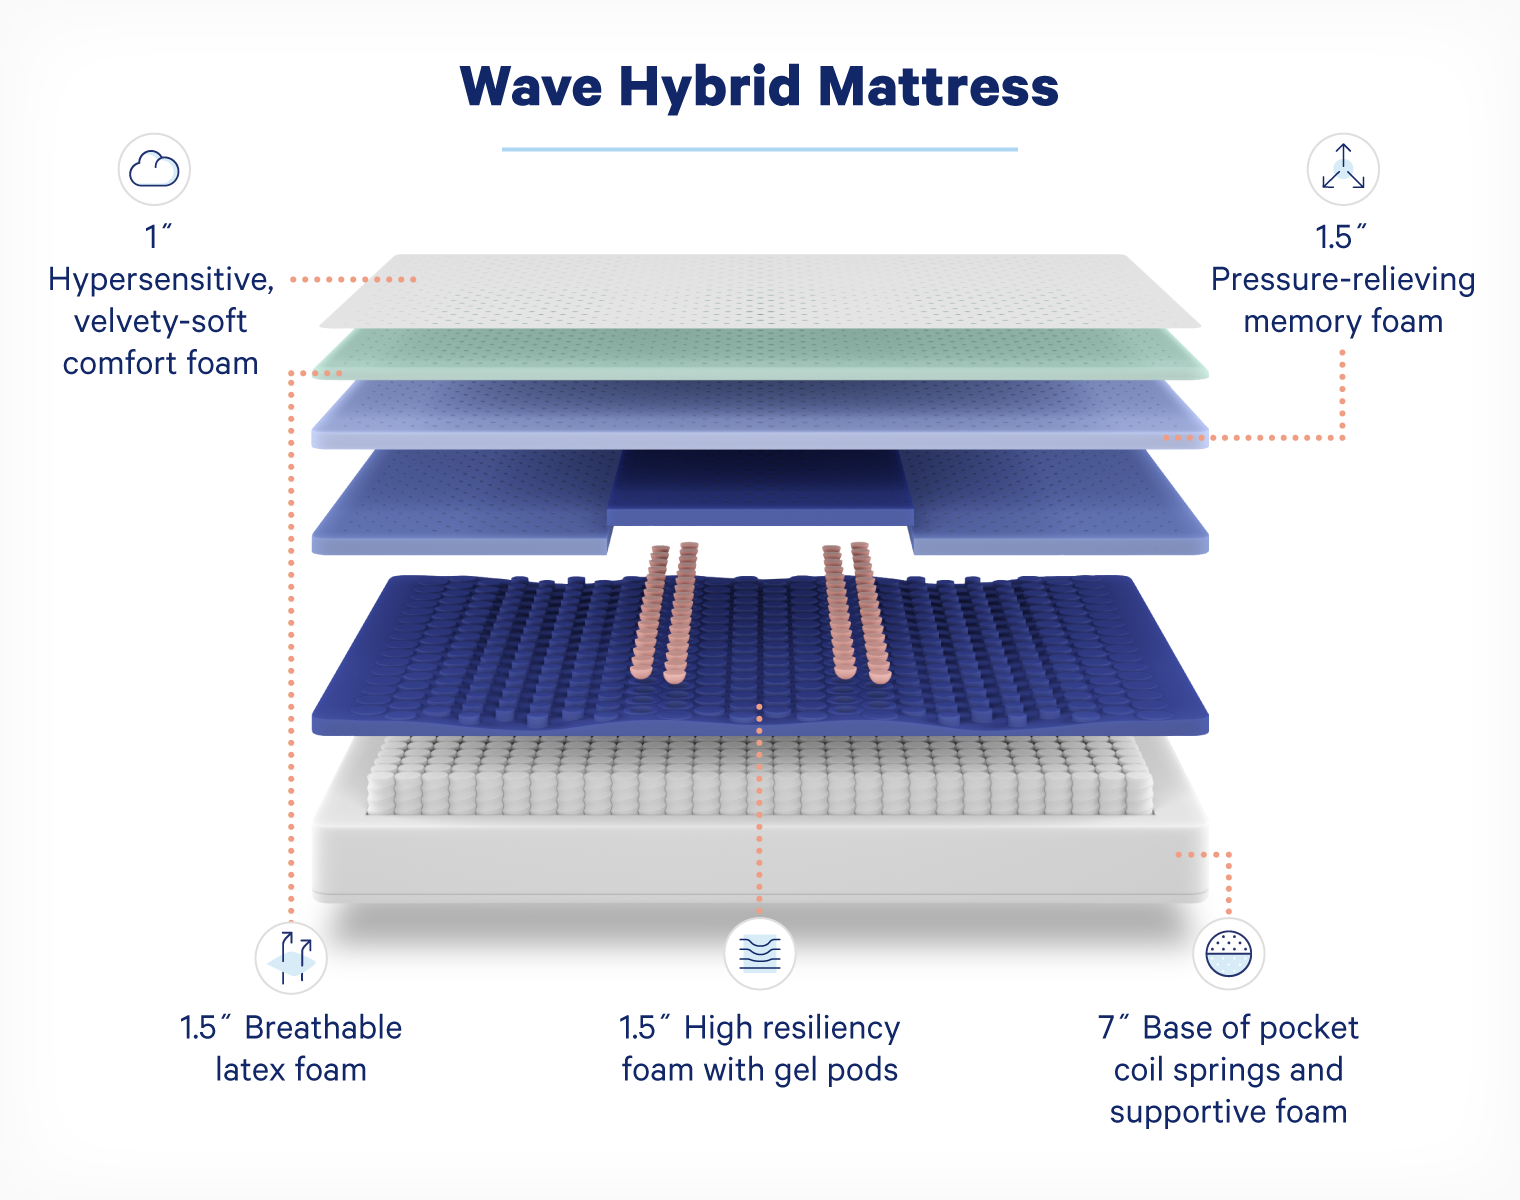 A diagram that breaks down the foam, latex, gel, and pocket coil spring layers of the Casper Hybrid Wave Mattress